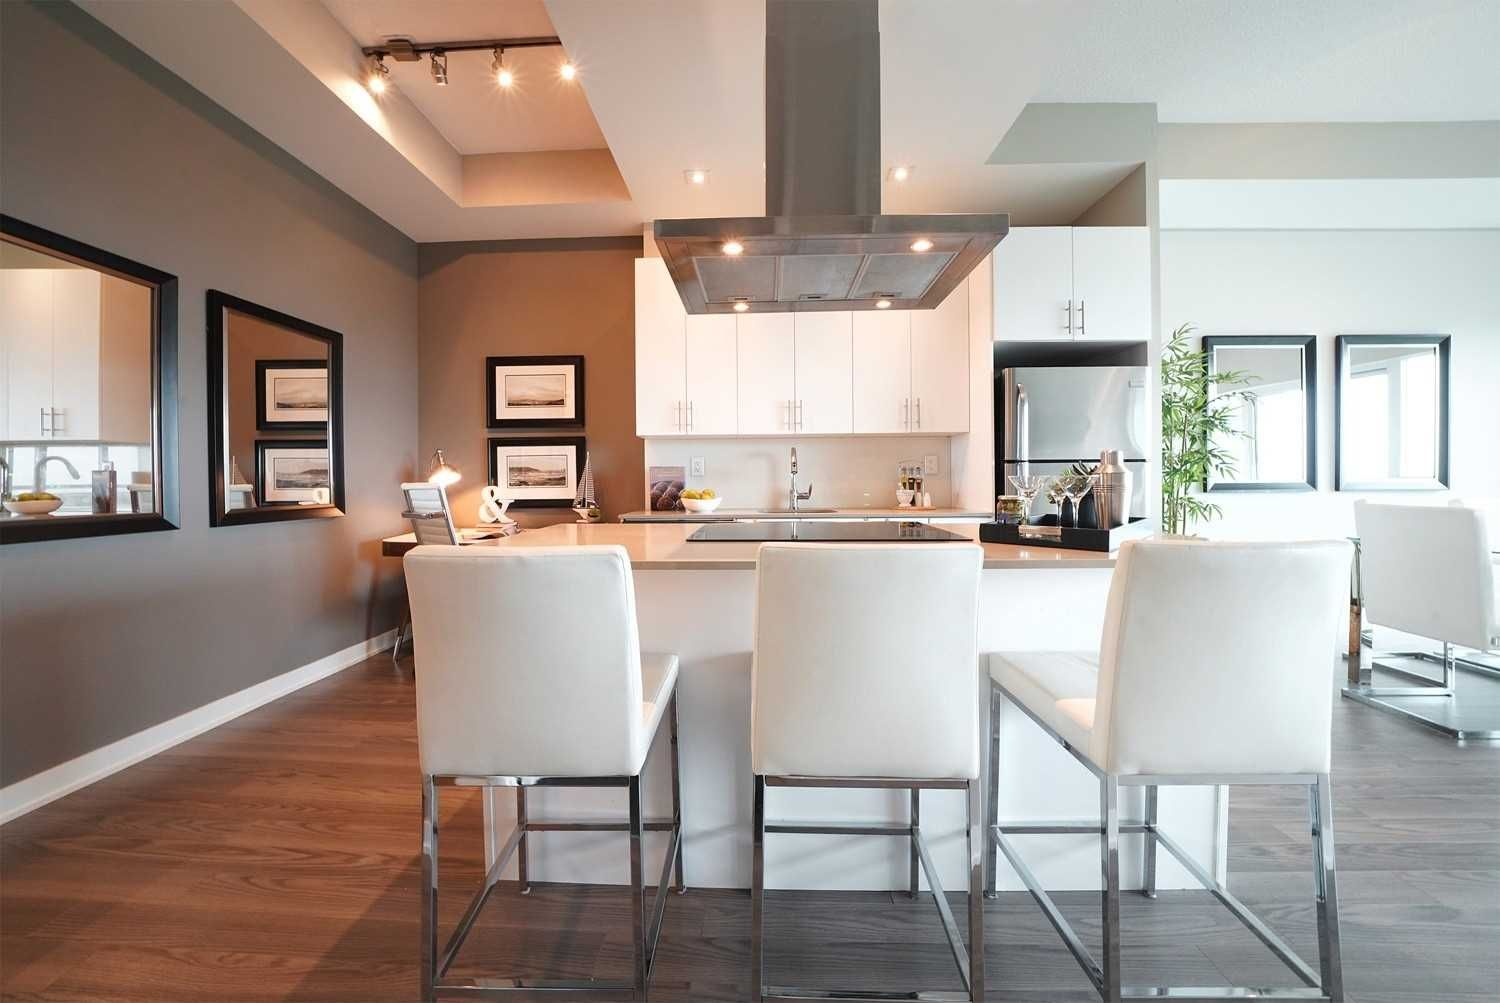 165 Legion Rd N, unit 1228 for sale in Toronto - image #2